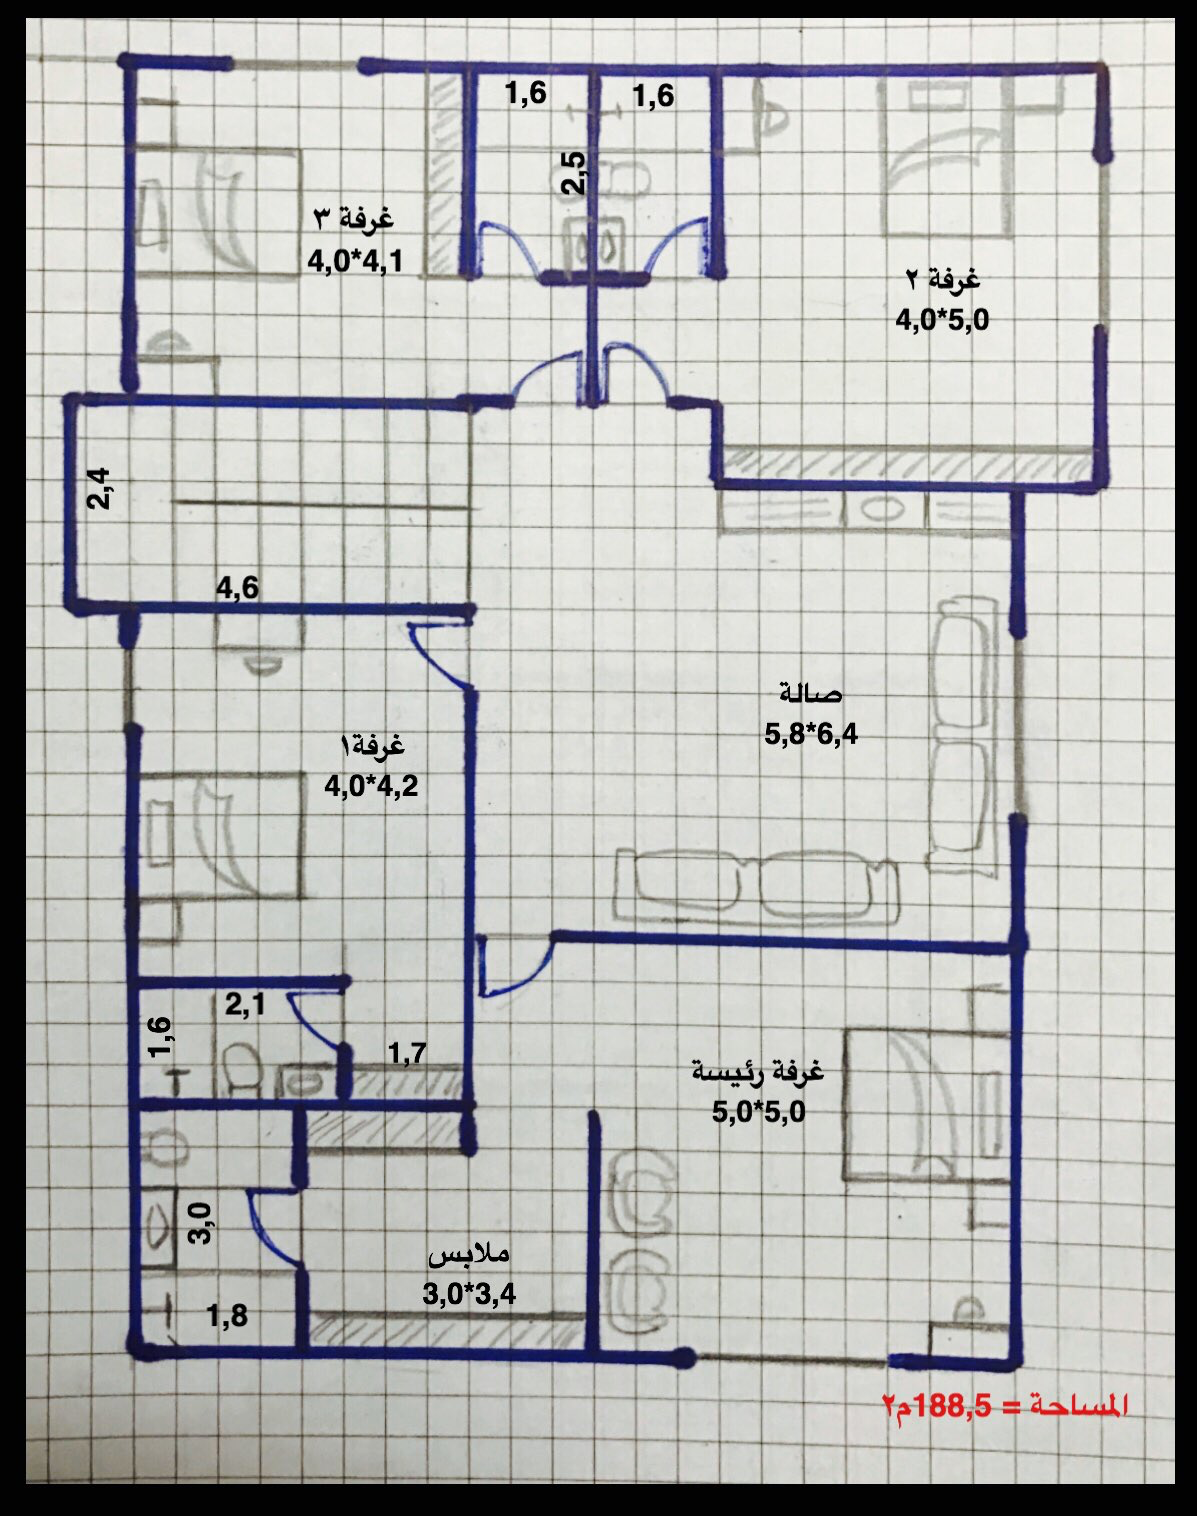 Pin By Musab Alshamrani On House Plans Simple House Plans Family House Plans Model House Plan